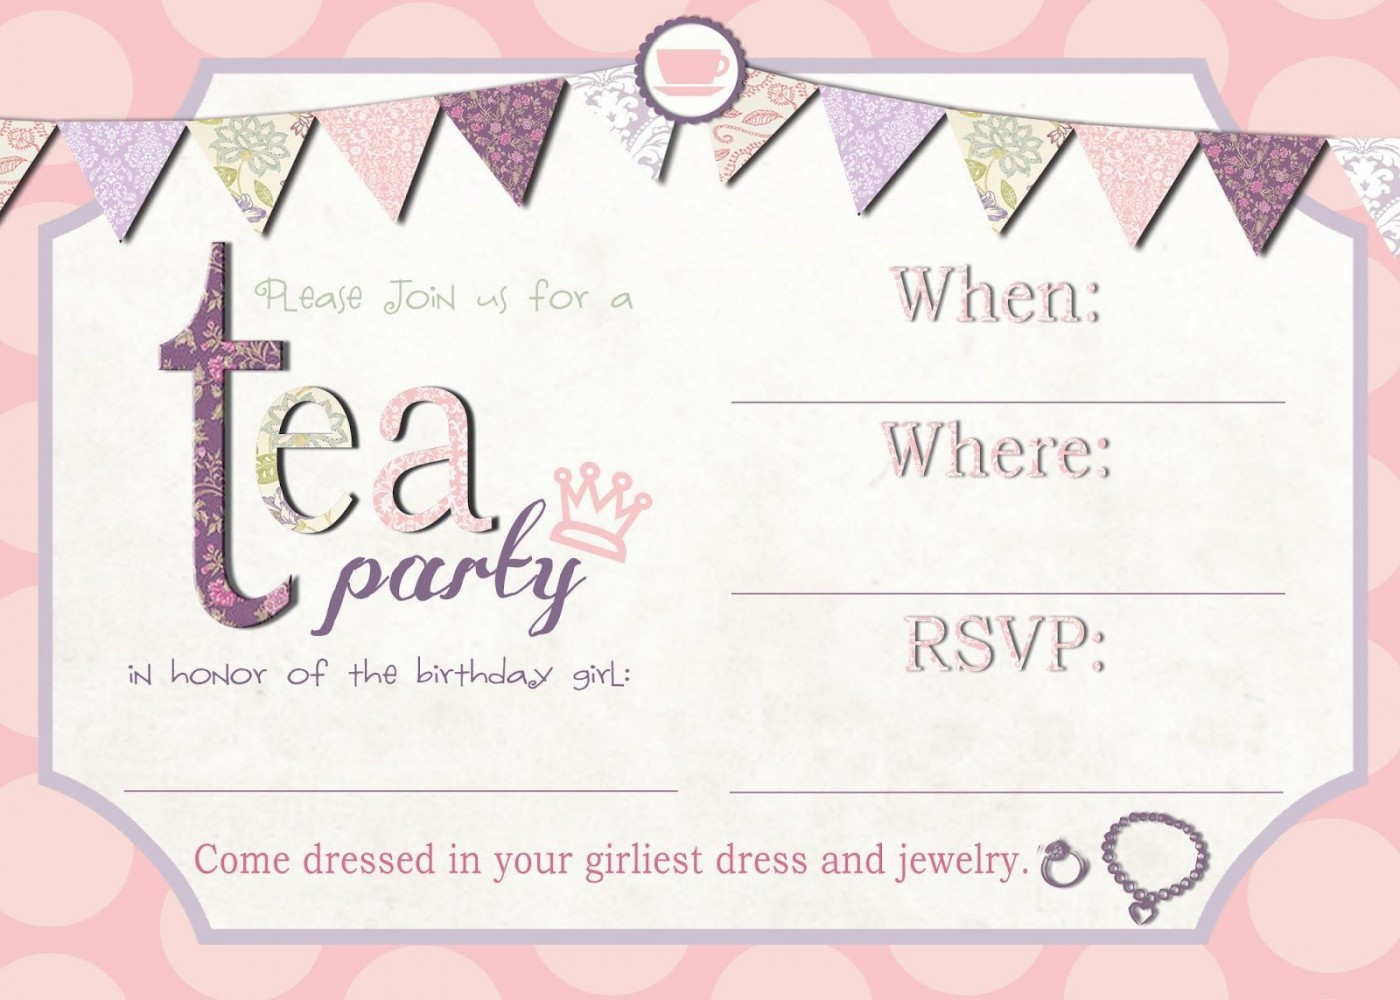 001 Awful Tea Party Invitation Template High Definition  Wording Vintage Free Sample1400